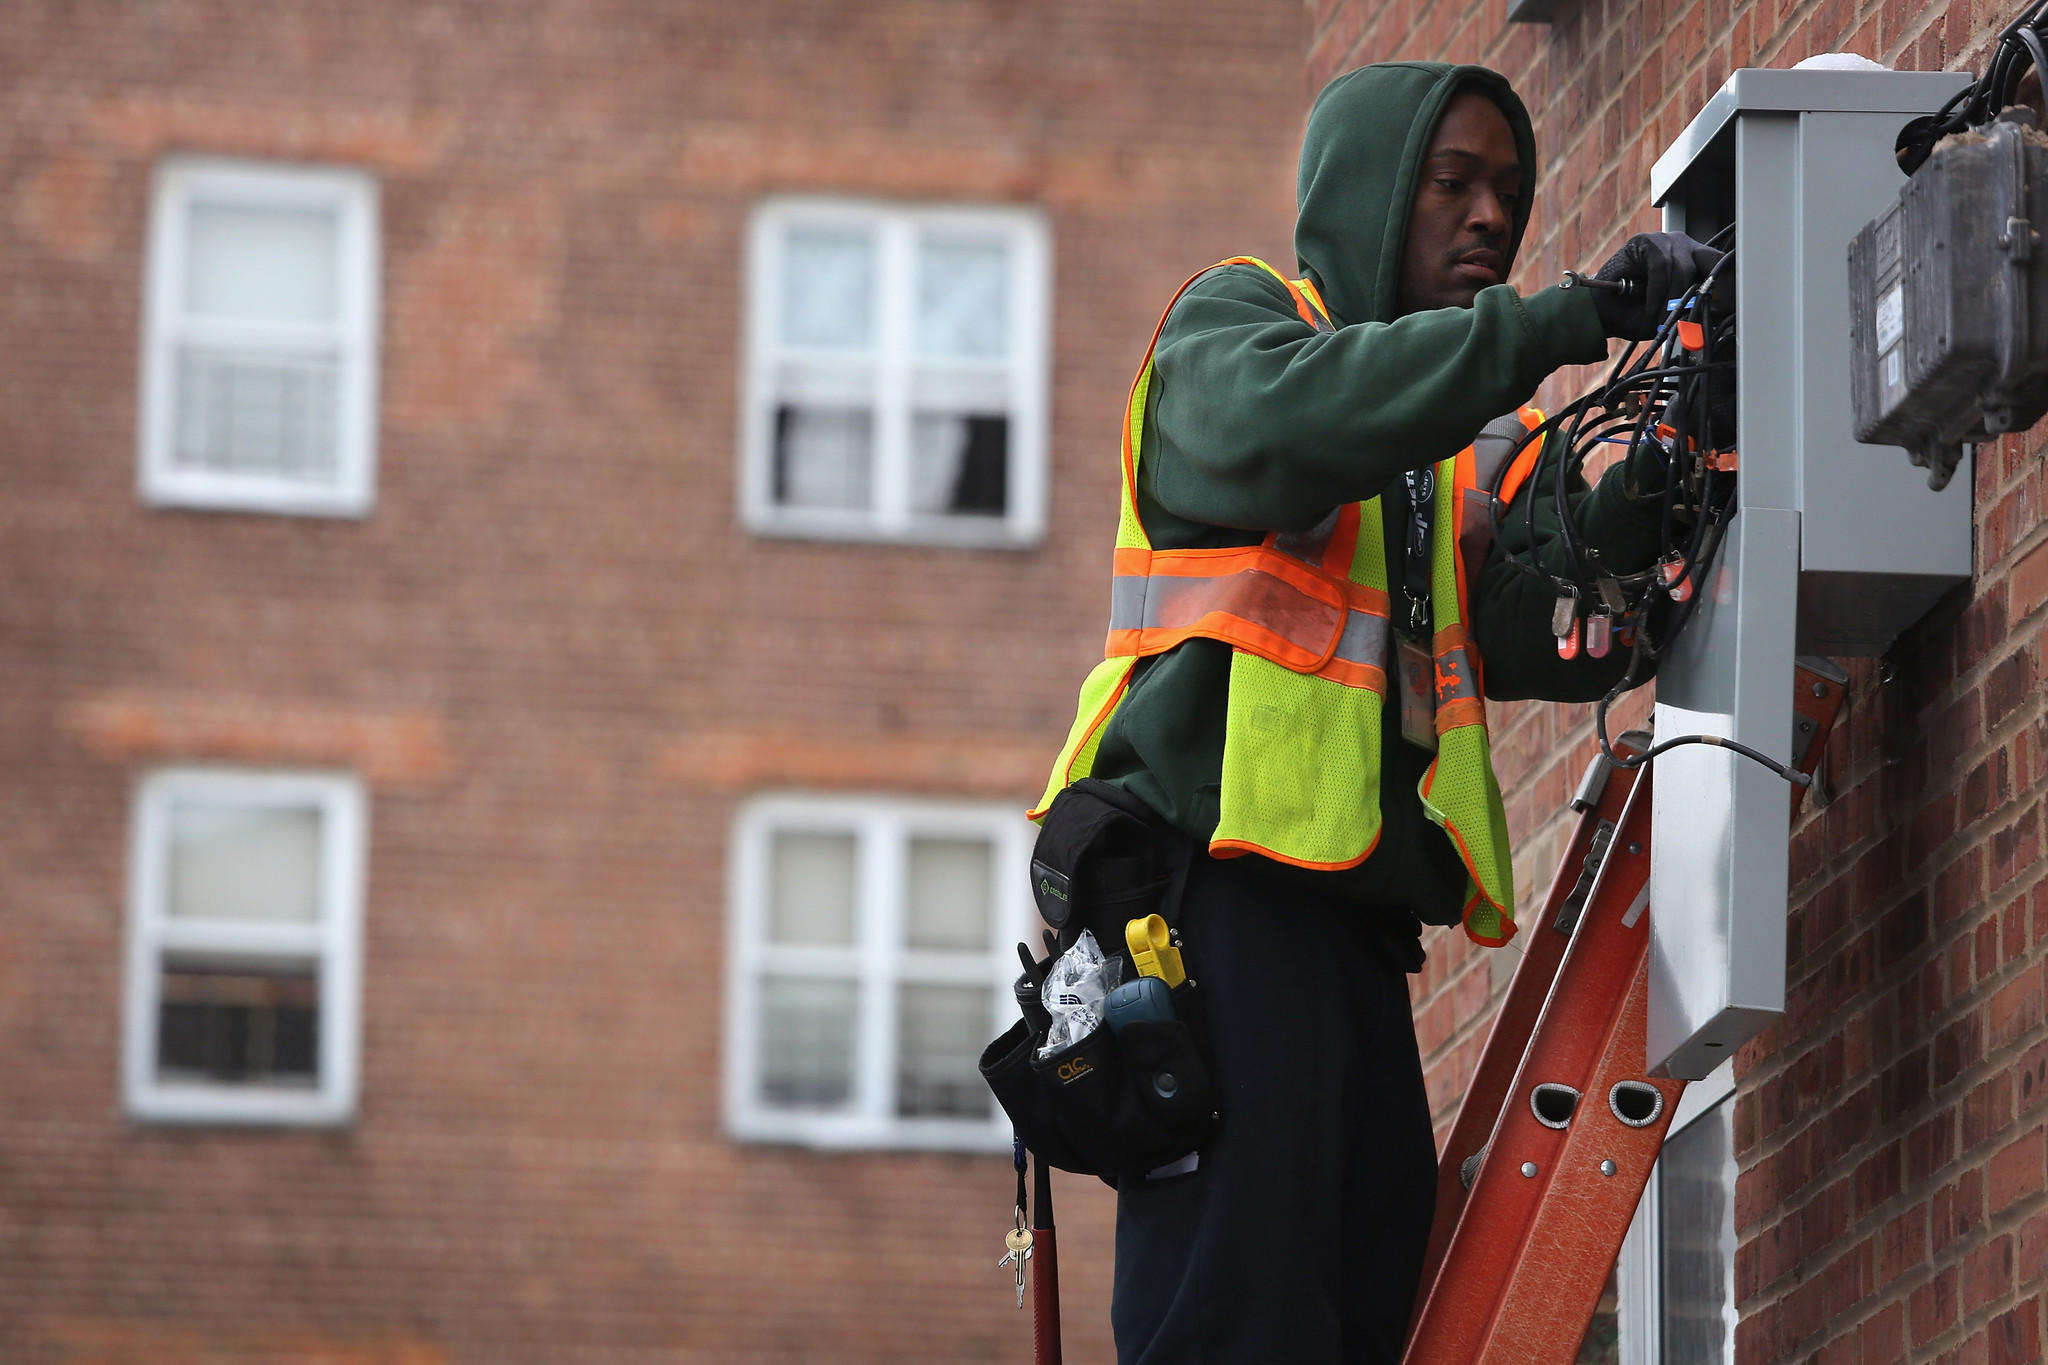 A worker for Time Warner Cable works to restore television reception to an apartment building.